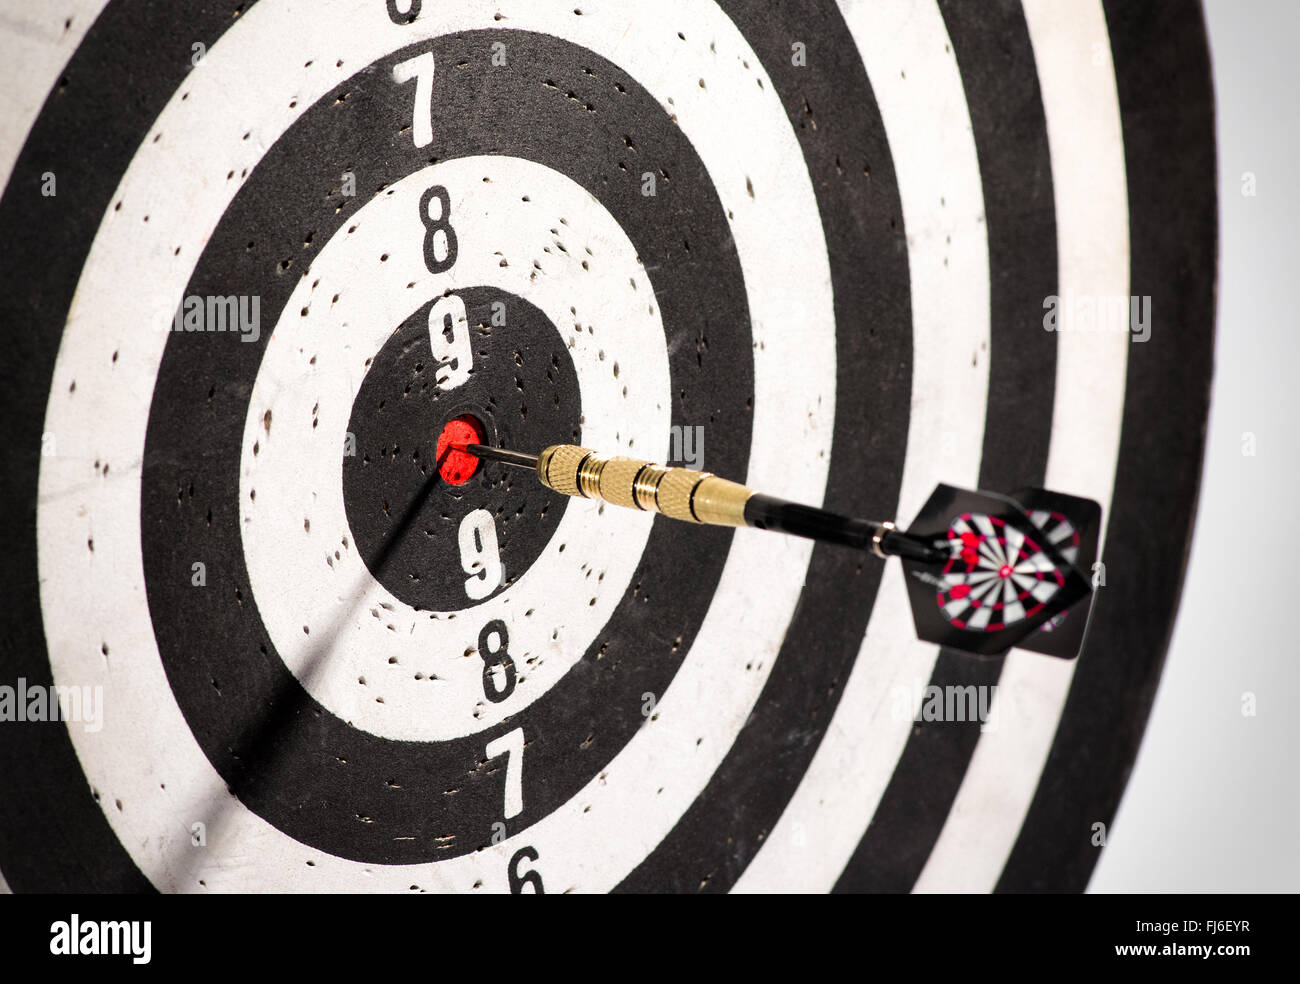 Dart in the bulls eye center of a dart board or black and white target - Stock Image